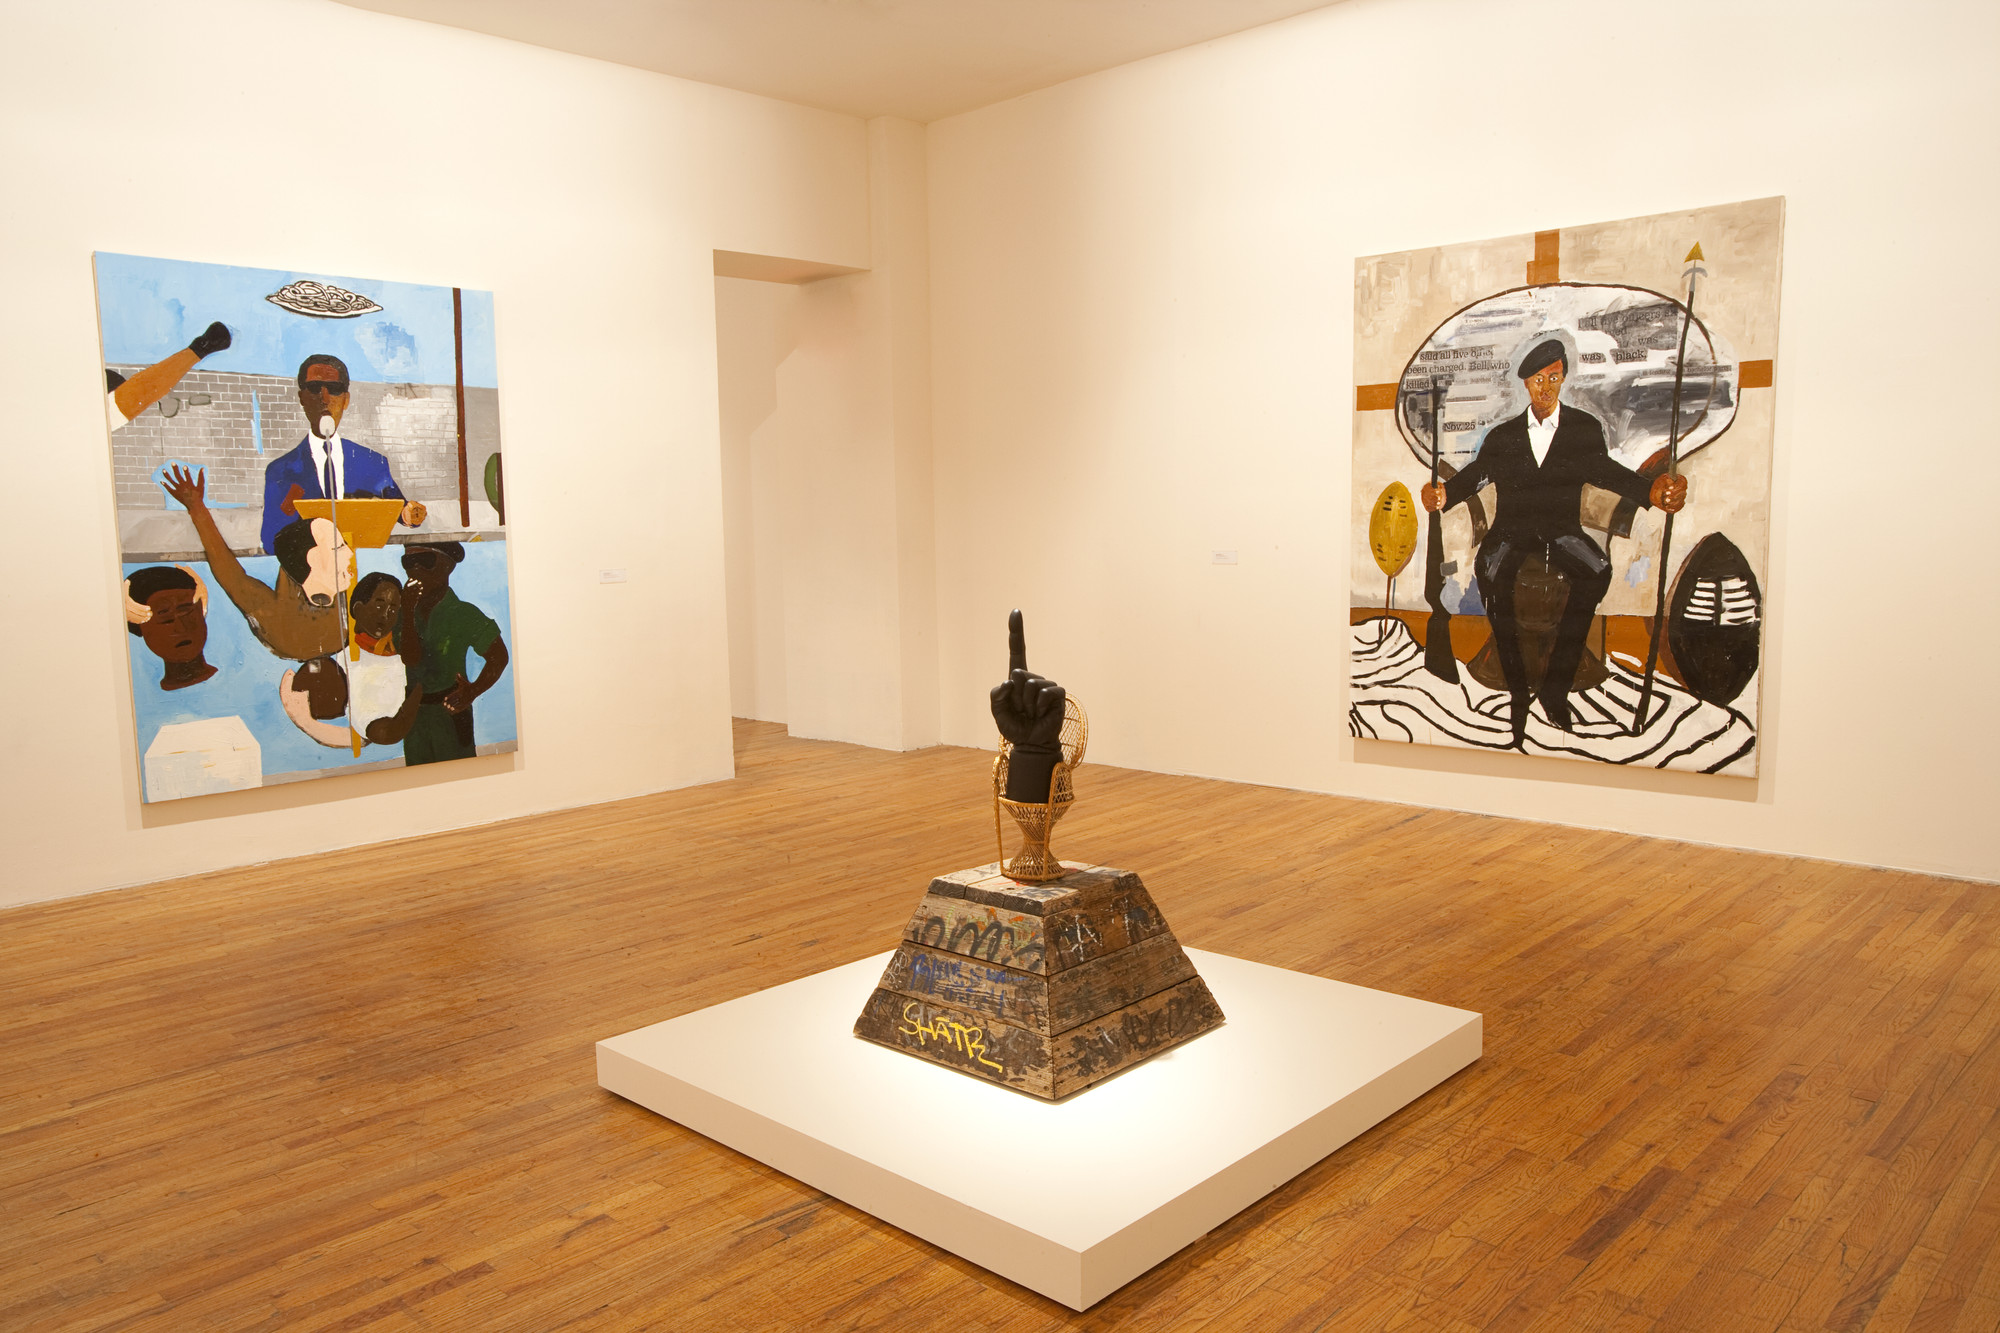 Installation view of Henry Taylor at MoMA PS1, January 29–April 9, 2012. Photo: Matthew Septimus